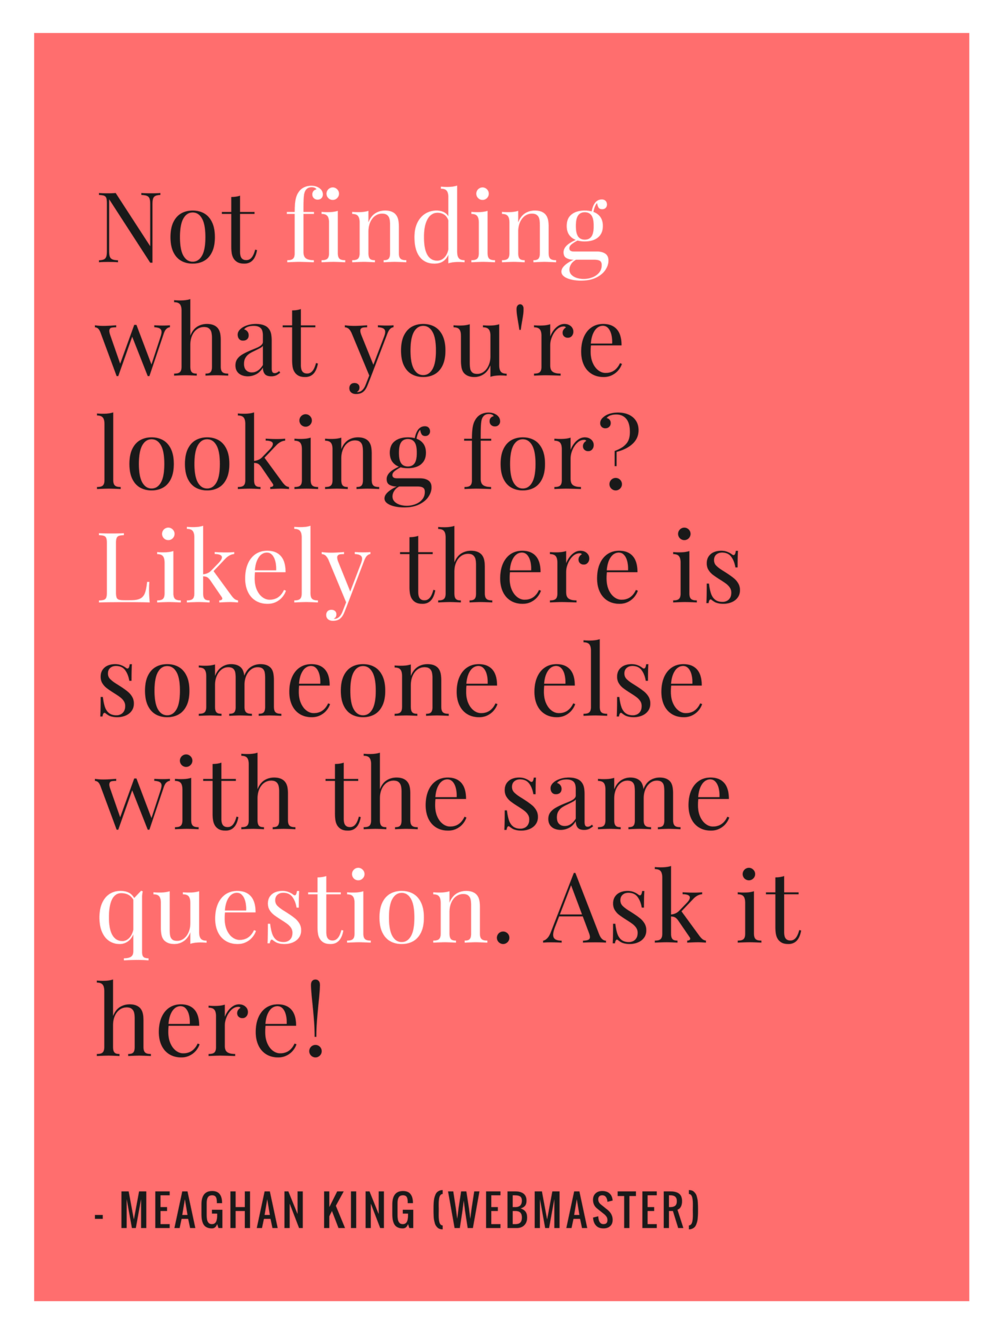 NO Finding what you re looking for?